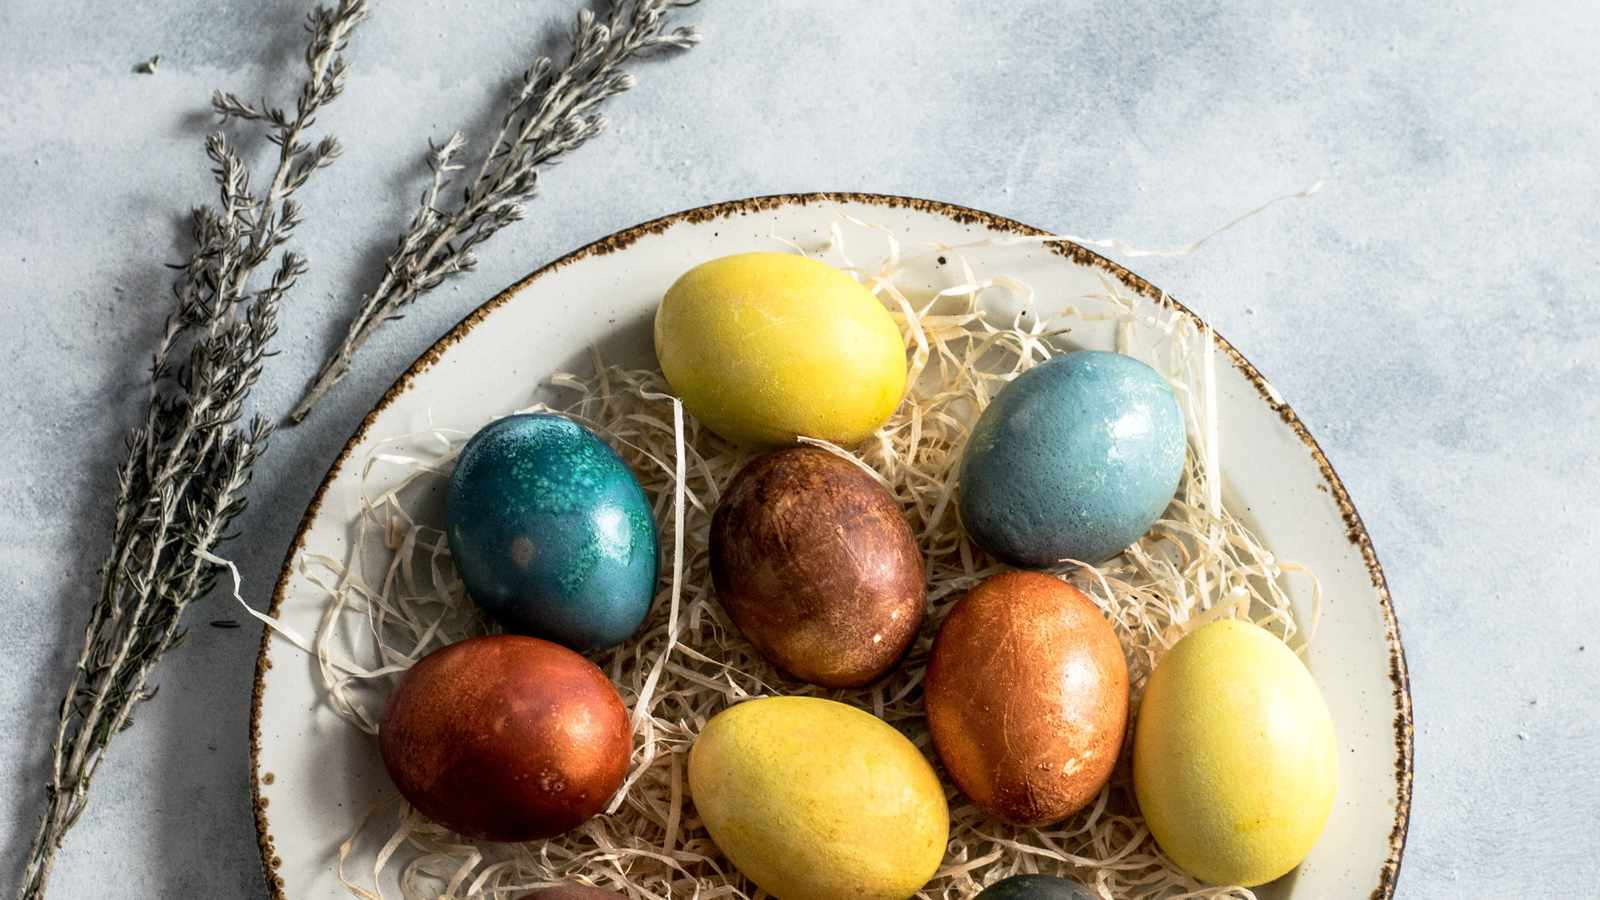 Making the case for Easter as the new Christmas